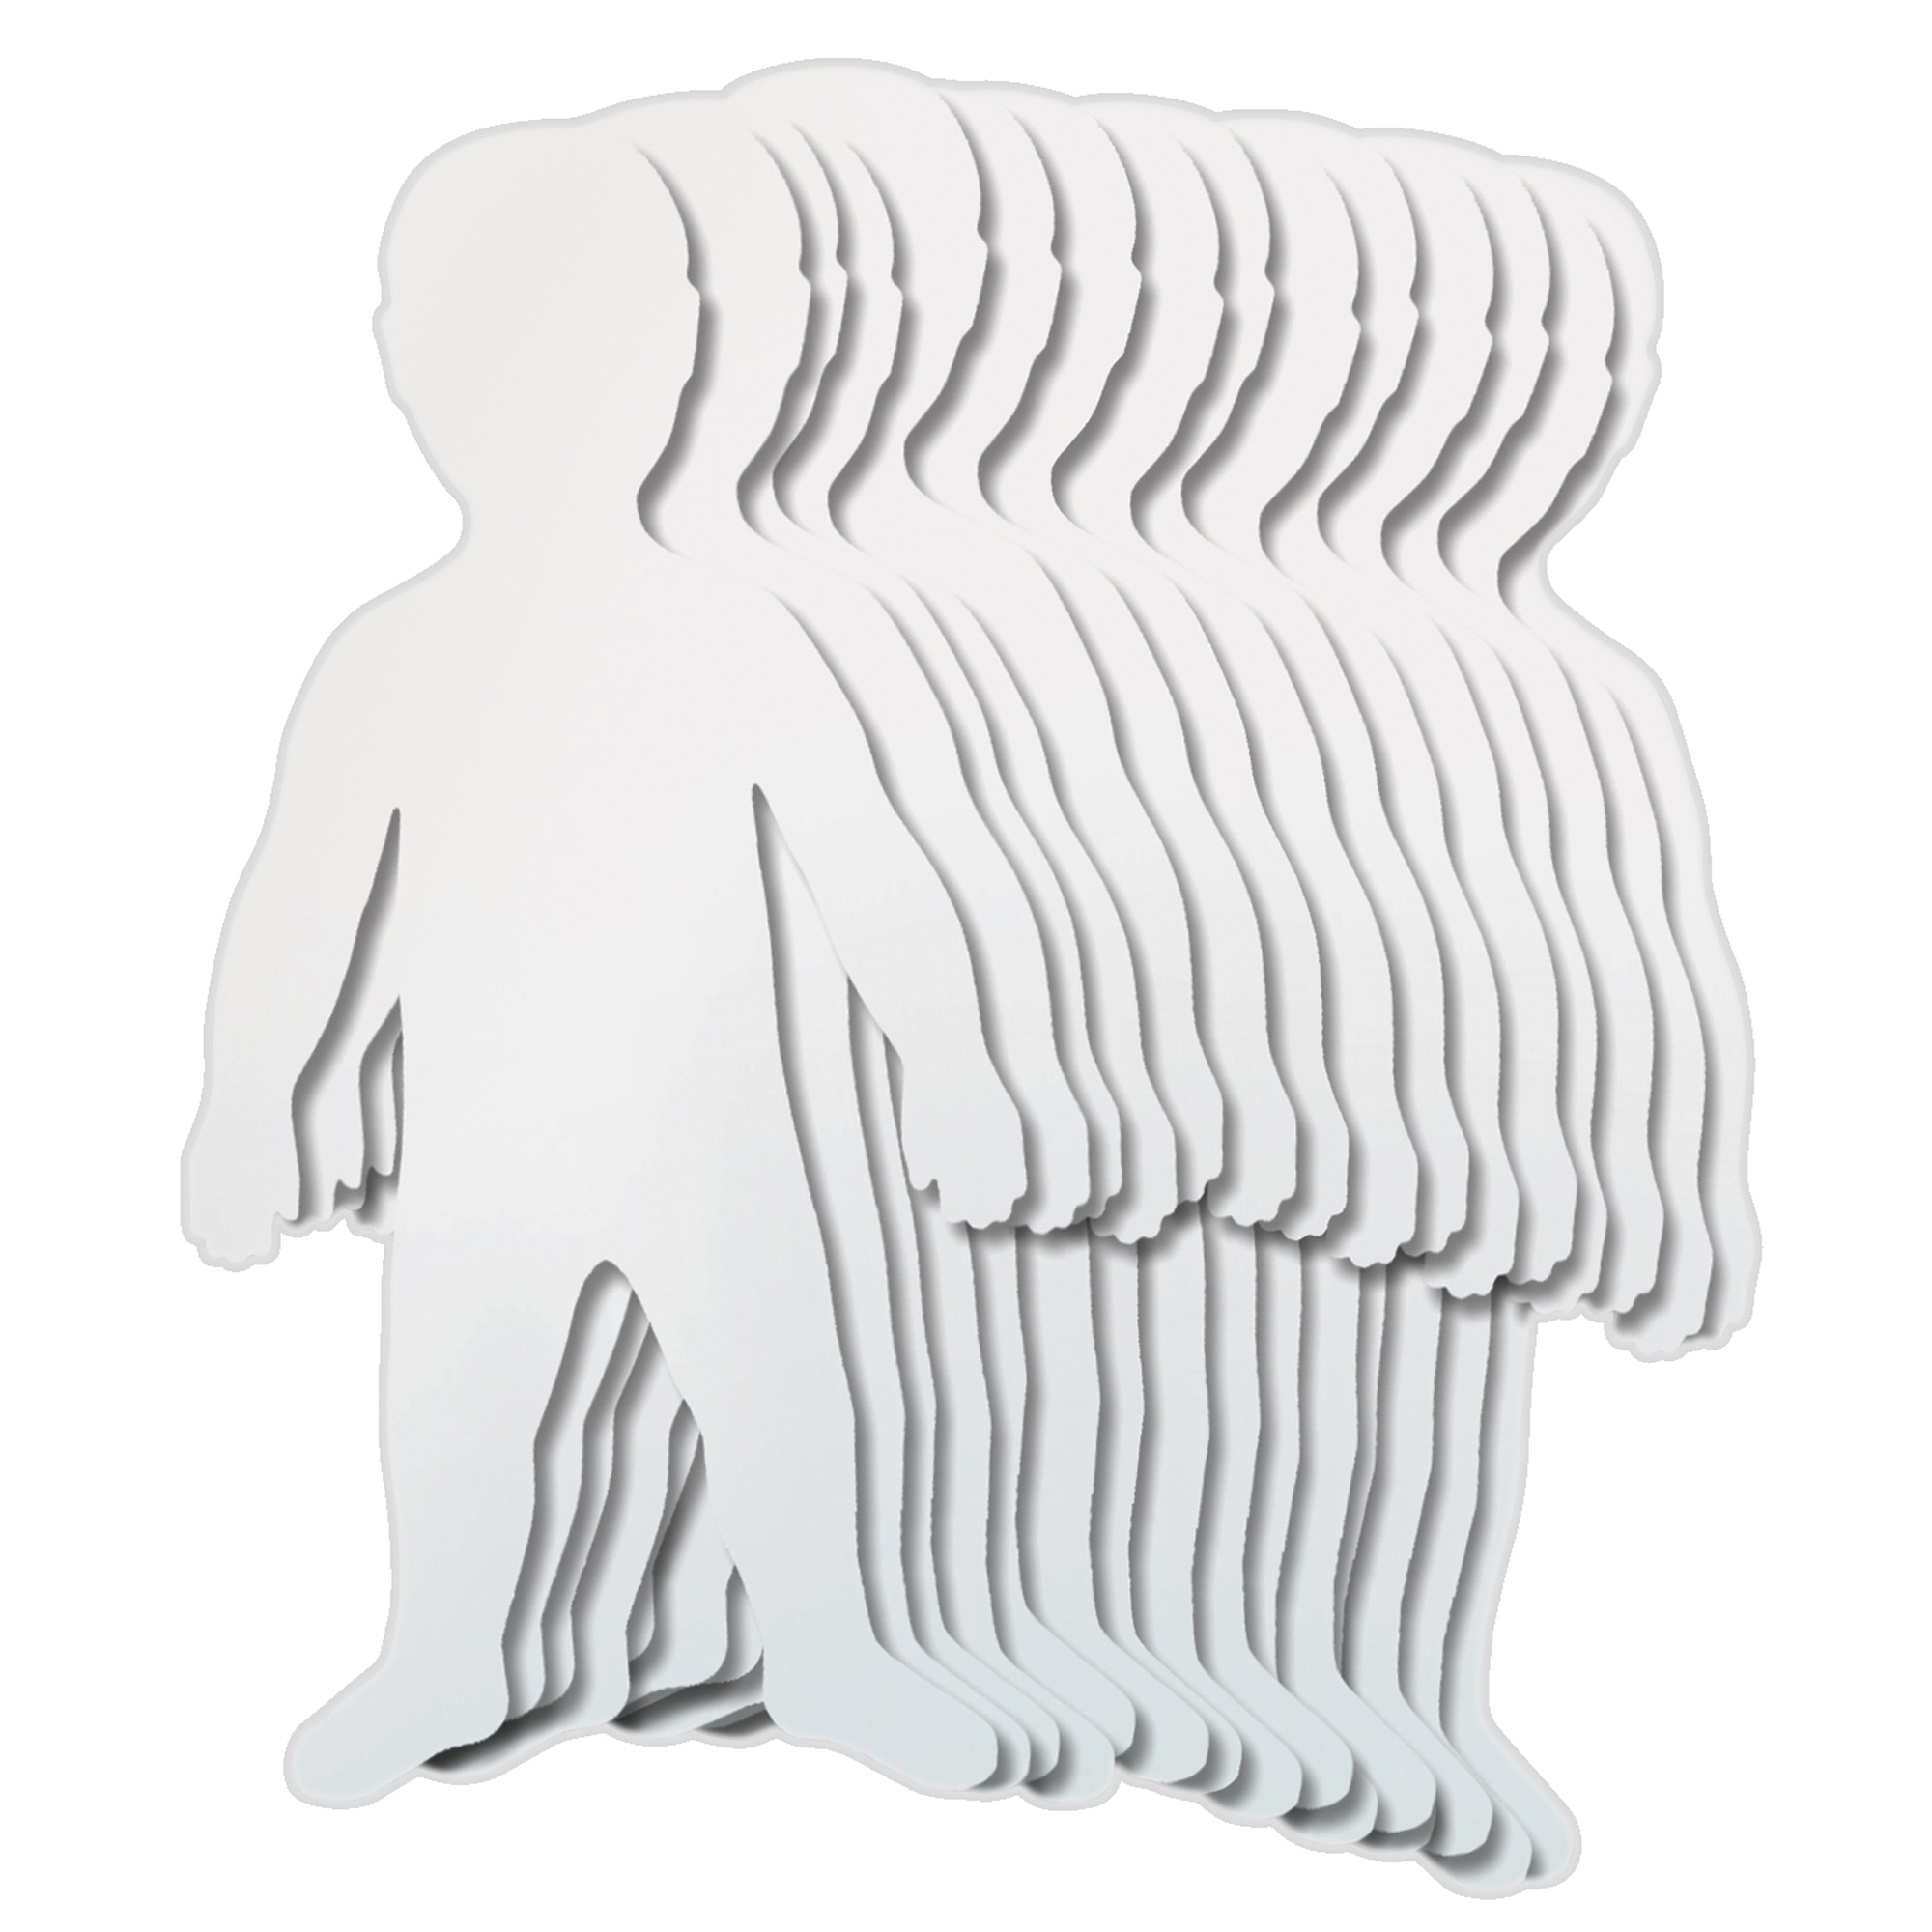 "Roylco® Giant Paper Kids, 18"" x 35"", 24/Pack"